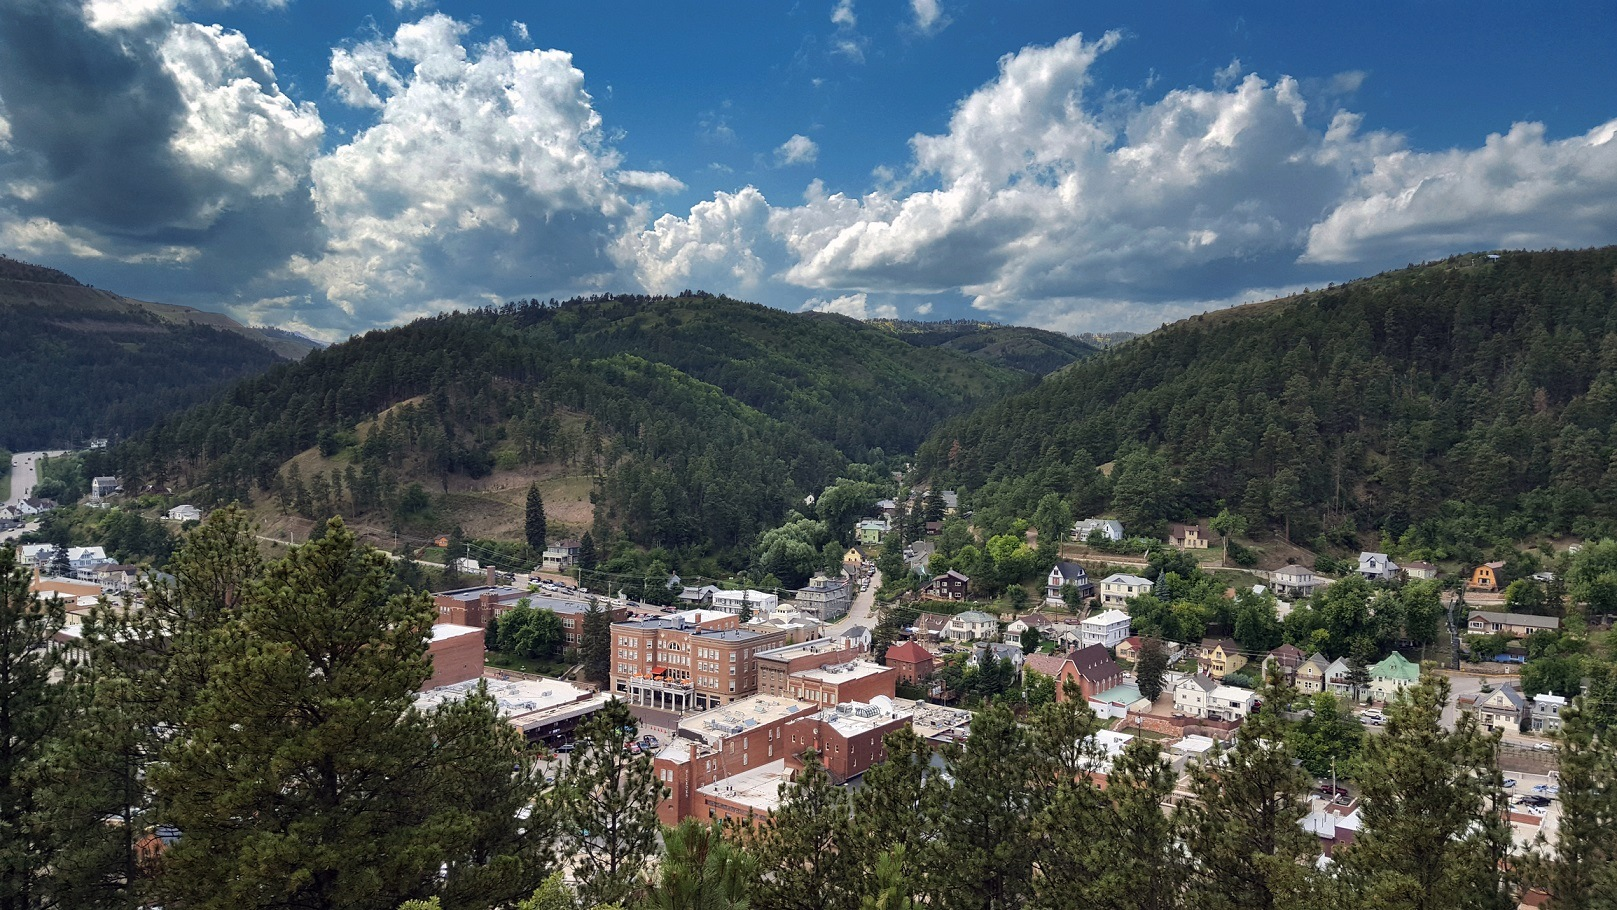 The Best Mountain Towns In The United States